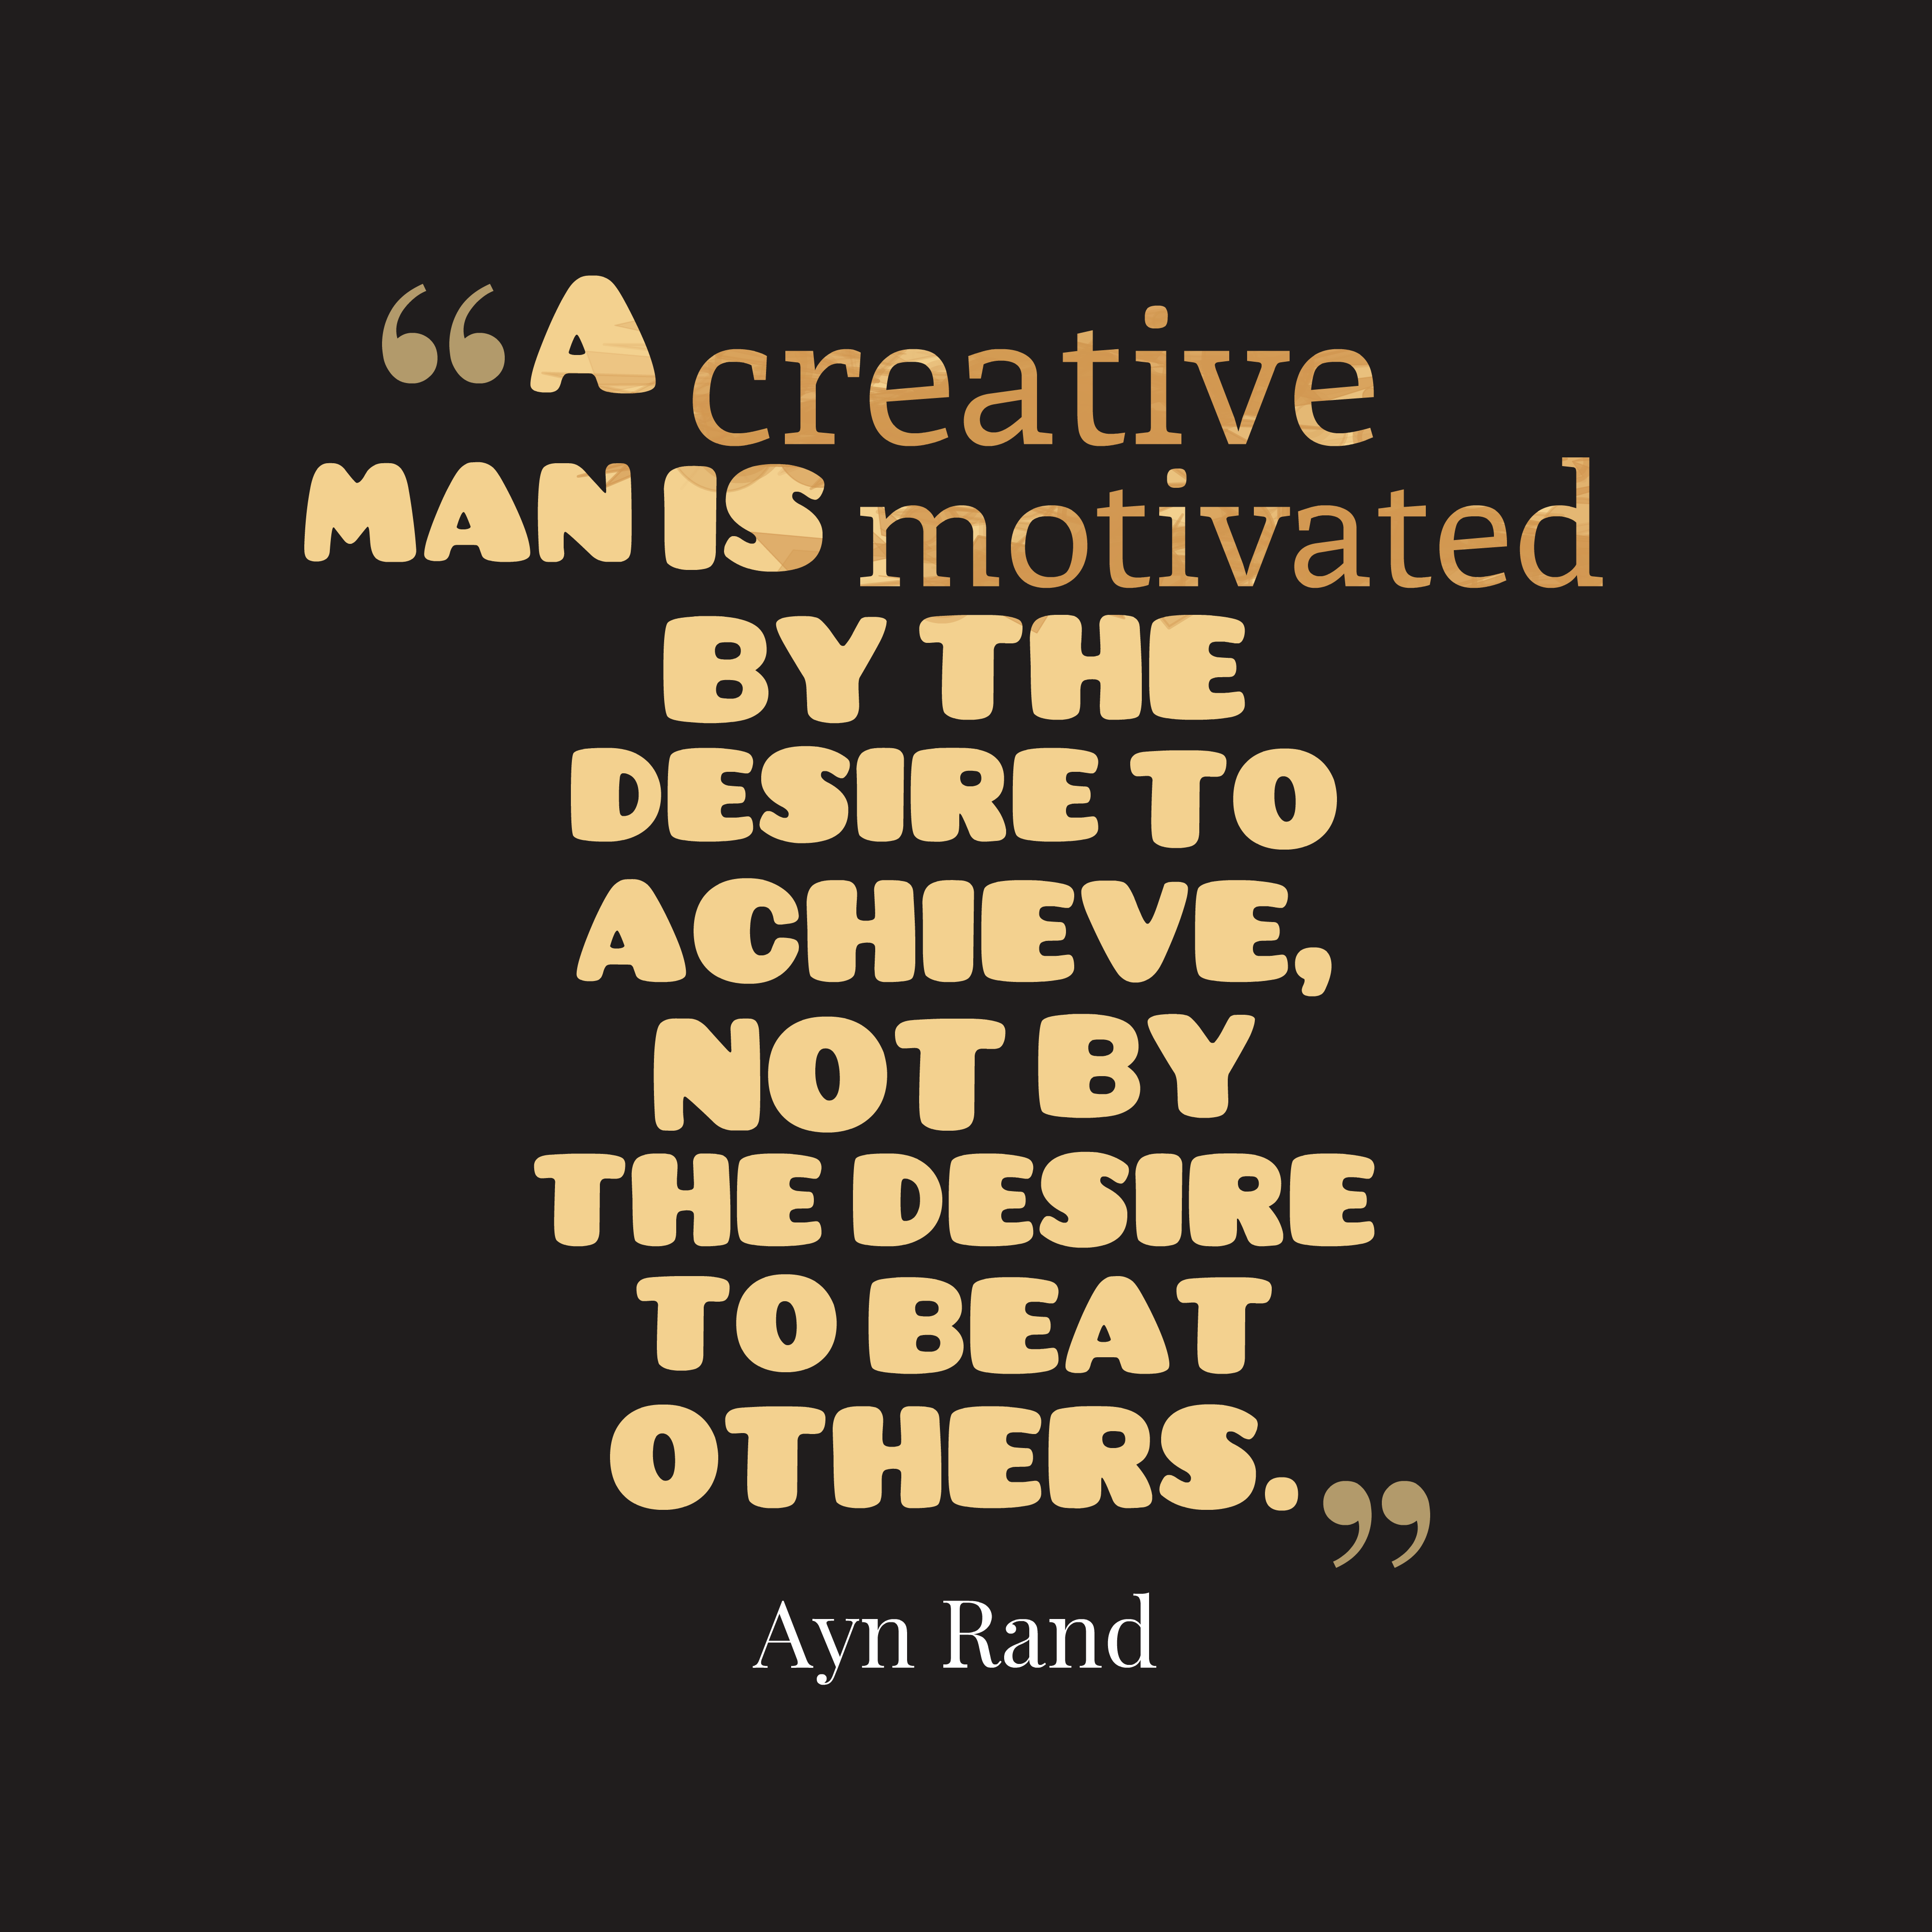 Ayn Rand Quote About Creative